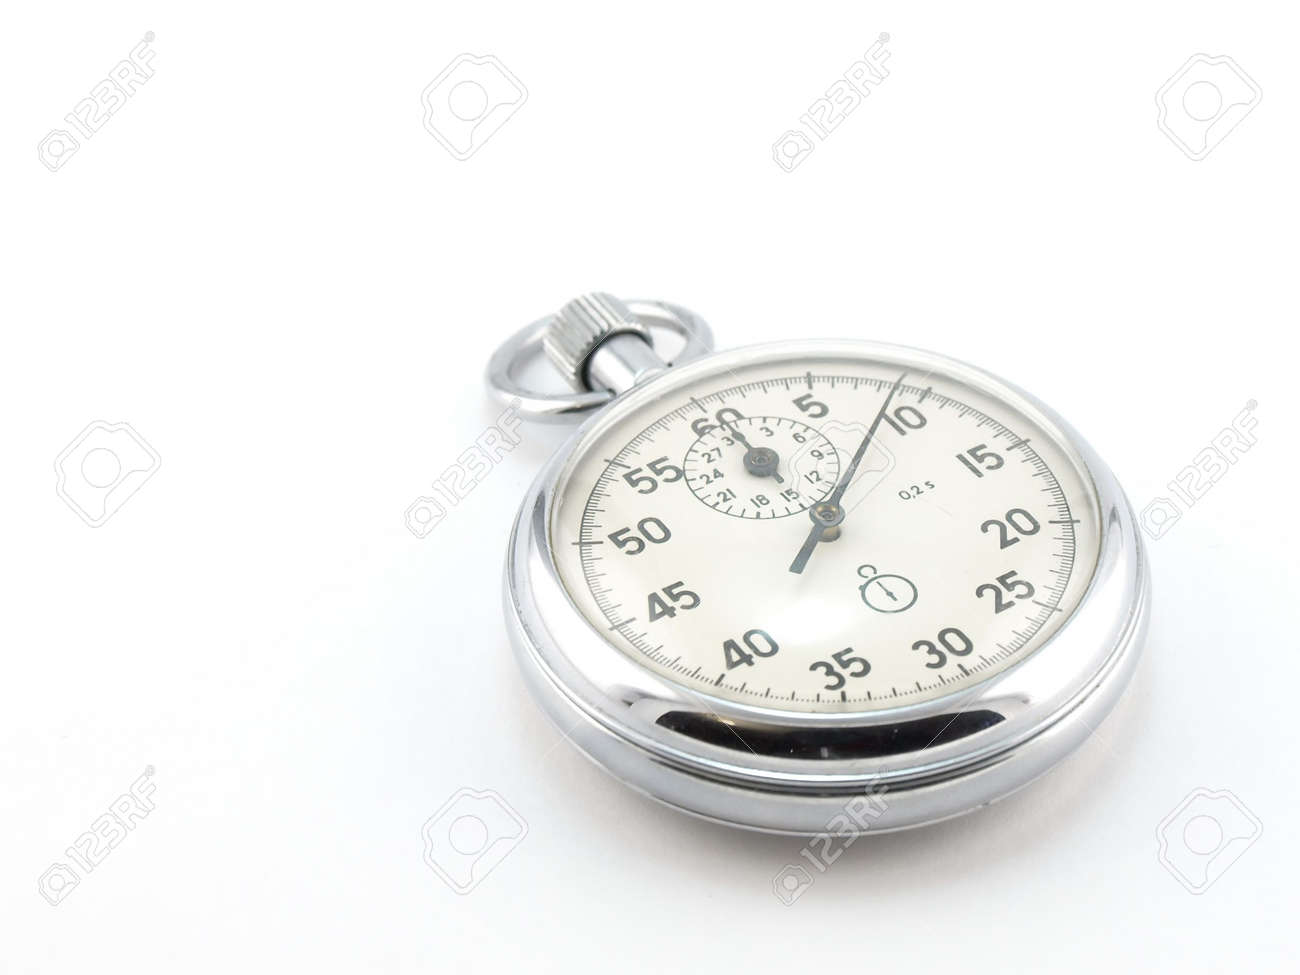 Stop-watch Stock Photo - 5874283